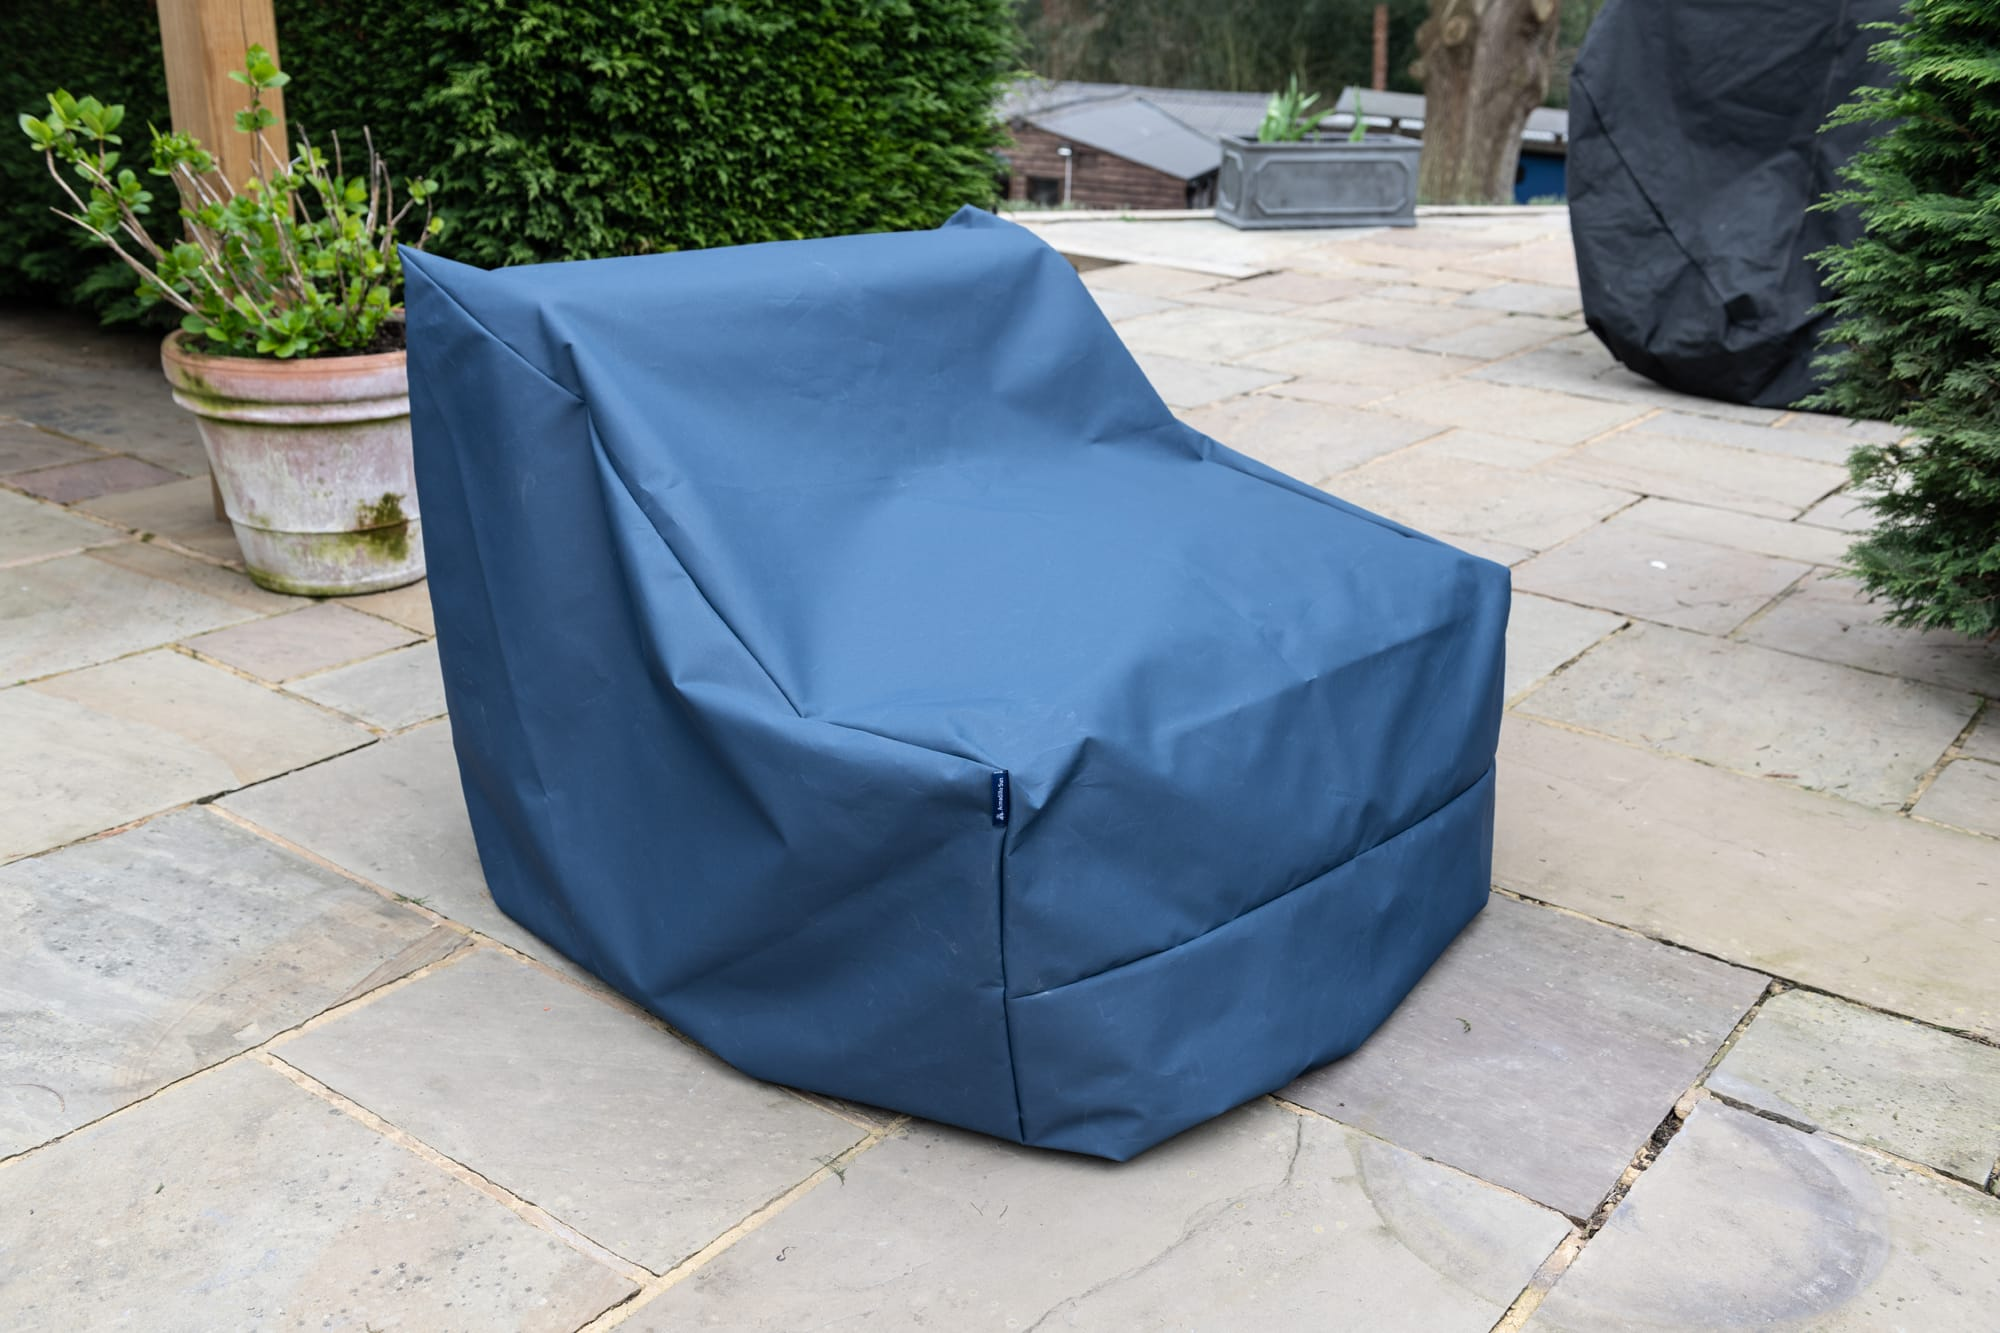 Winter Outdoor Covers For Bean Bag Chairs armadillosun